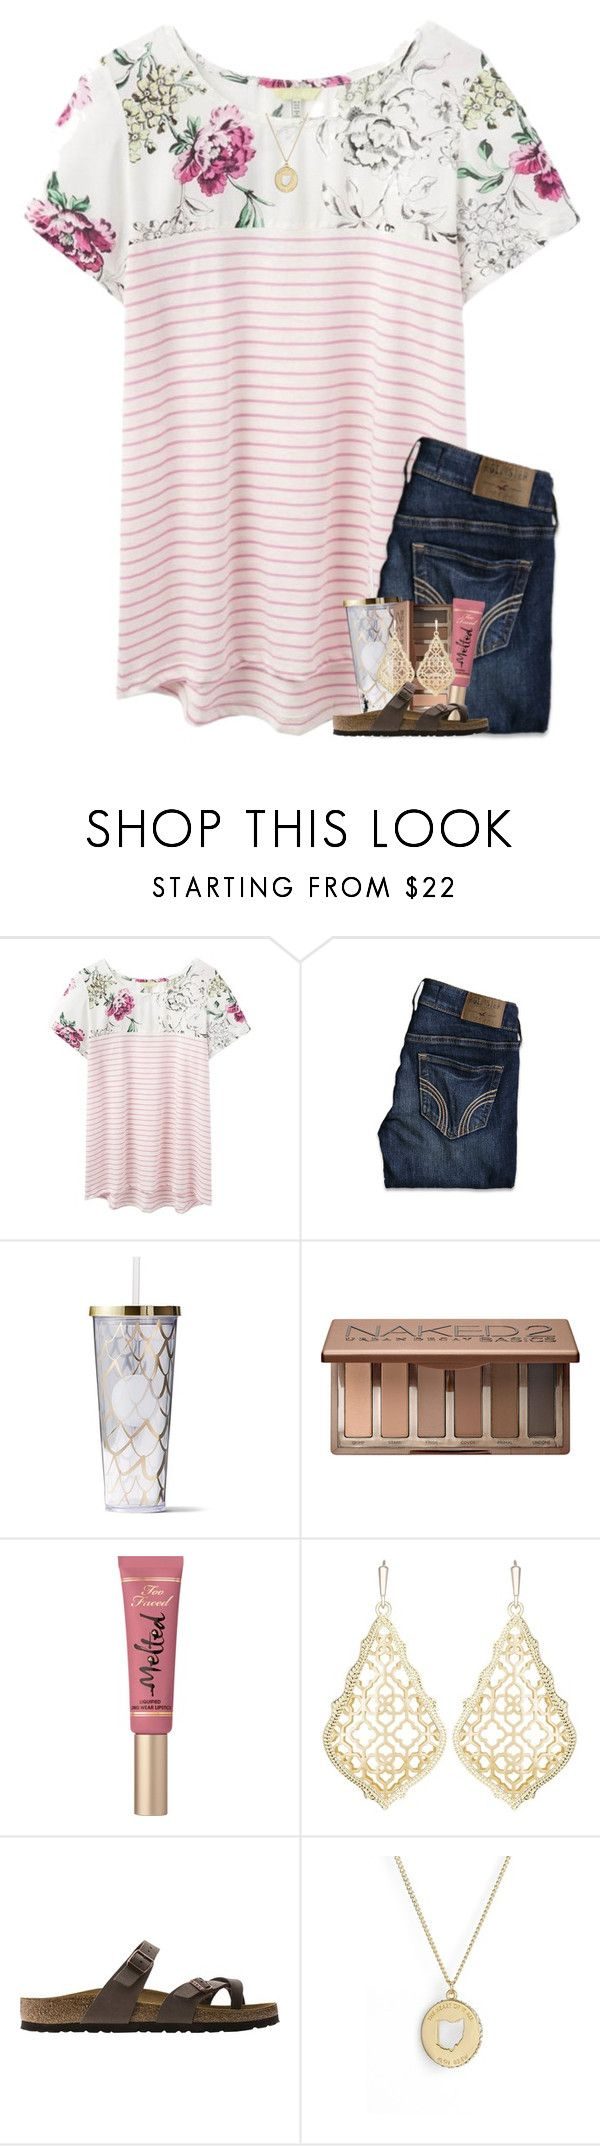 """giving you another chance"" by oliviajordyn ❤ liked on Polyvore featuring Joules, Hollister Co., Urban Decay, Too Faced Cosmetics, Kendra Scott, Birkenstock and Kate Spade"